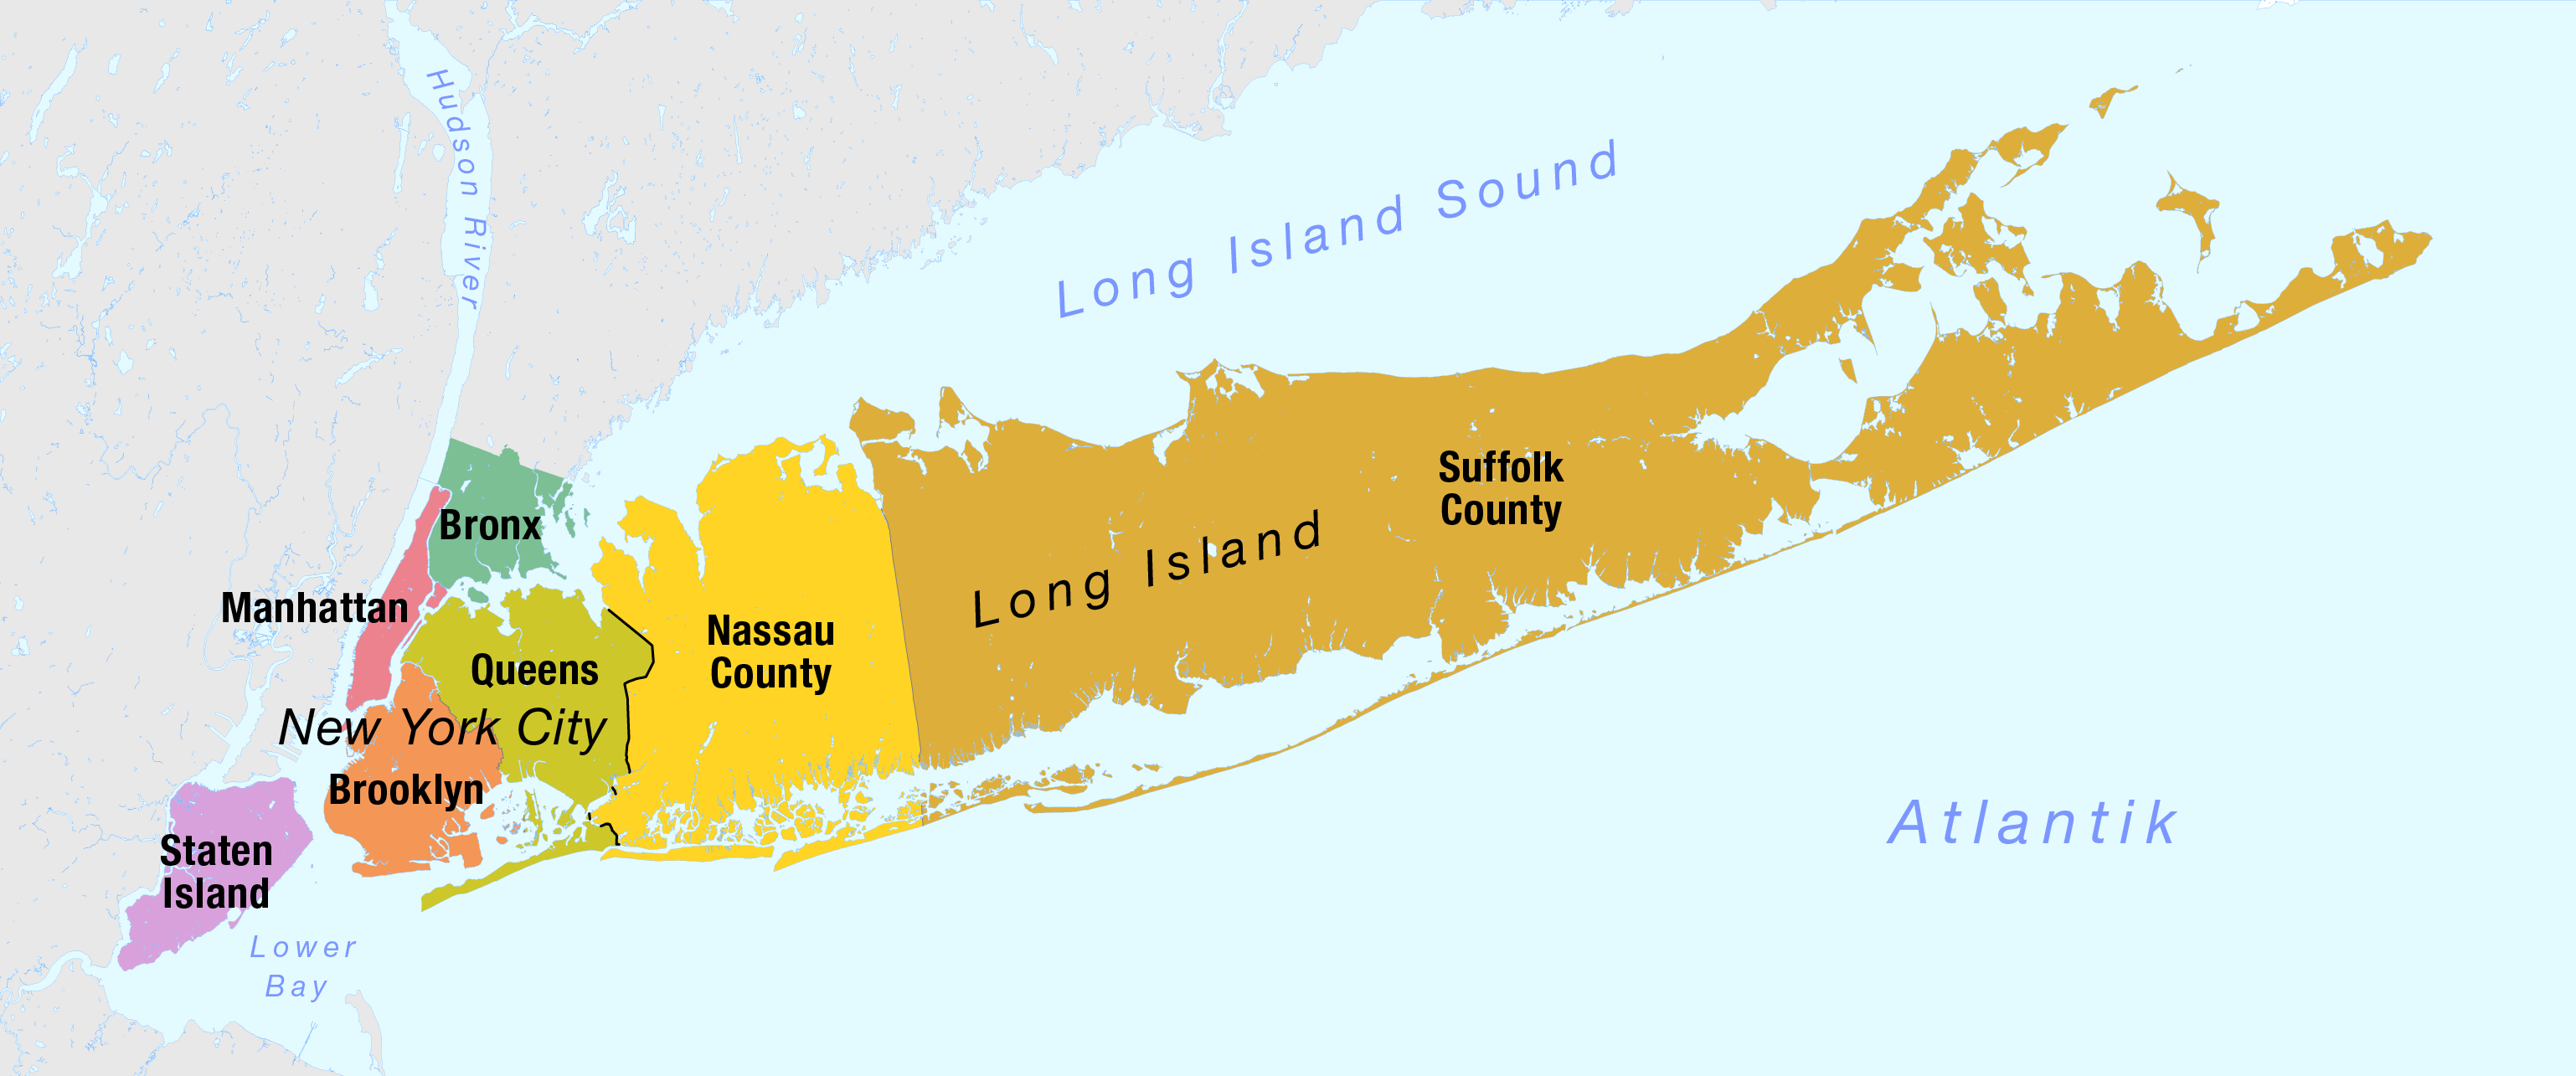 Map Of Long Island Showing Counties